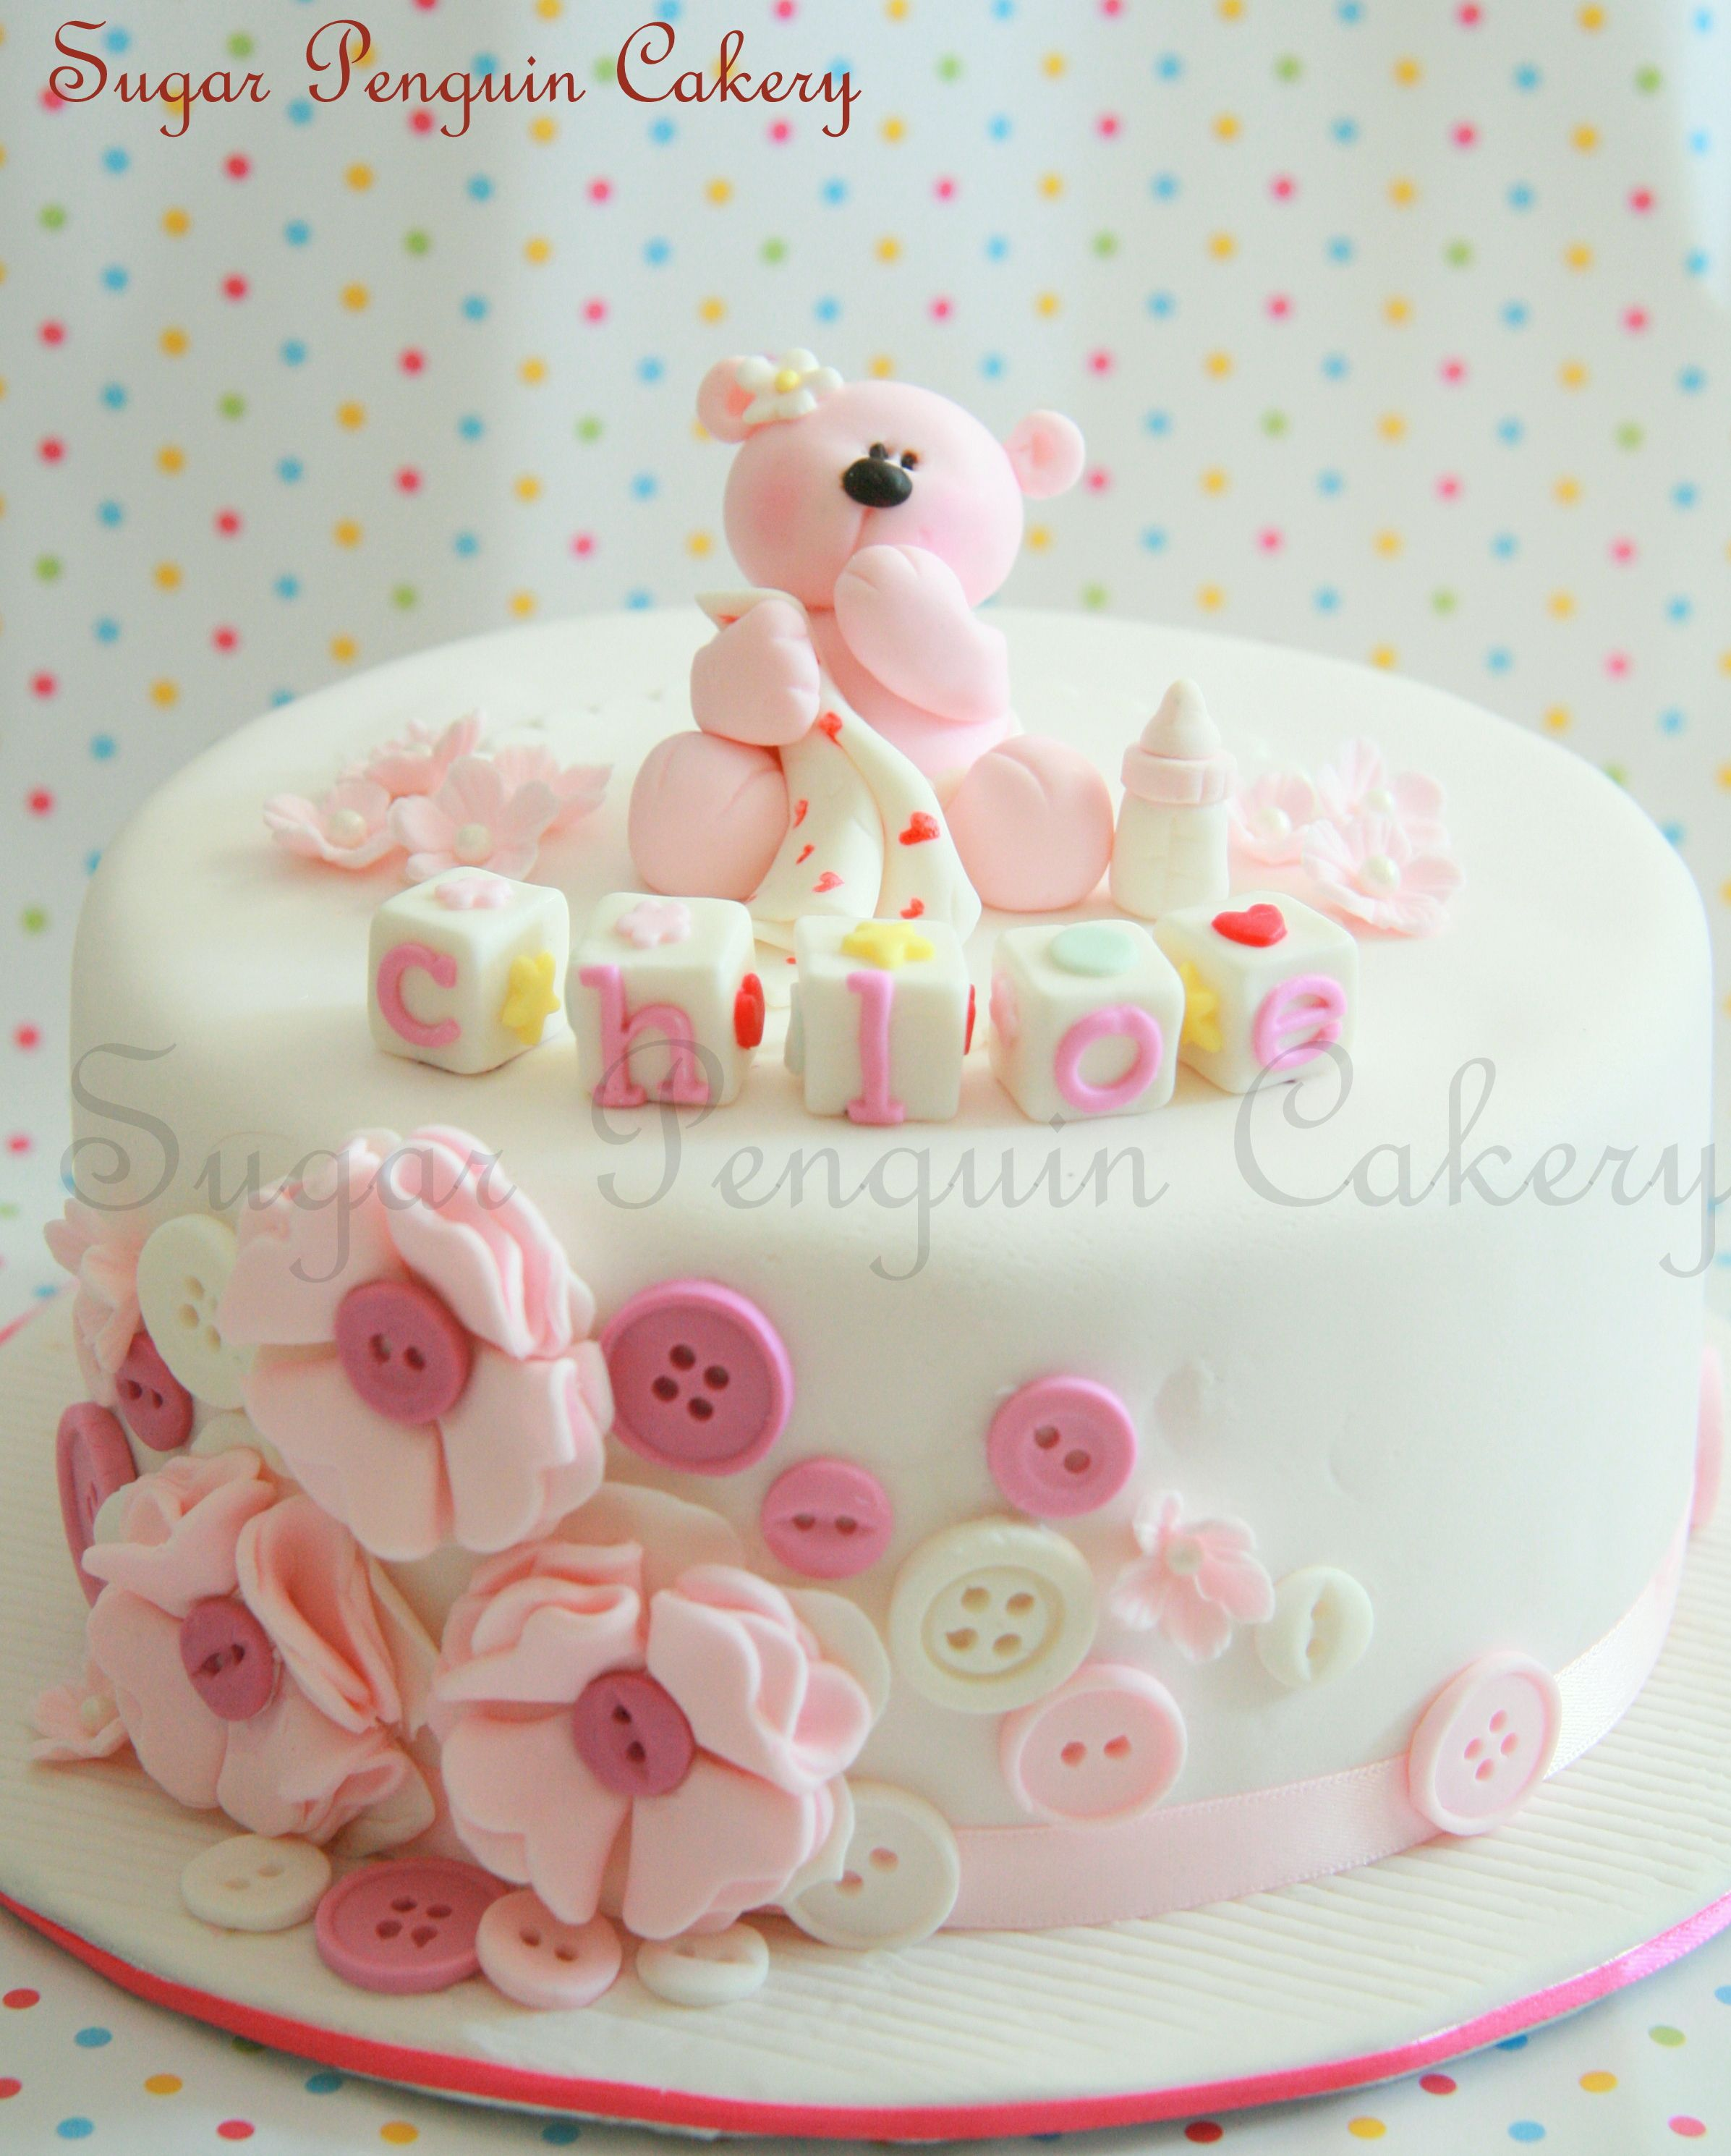 My Friend At Sugar Penguin Cakery Made This Little Cute Cake Inspired By My Hairclips Sugarpenguin Cupcake Cakes 1st Birthday Cake For Girls Teddy Cakes